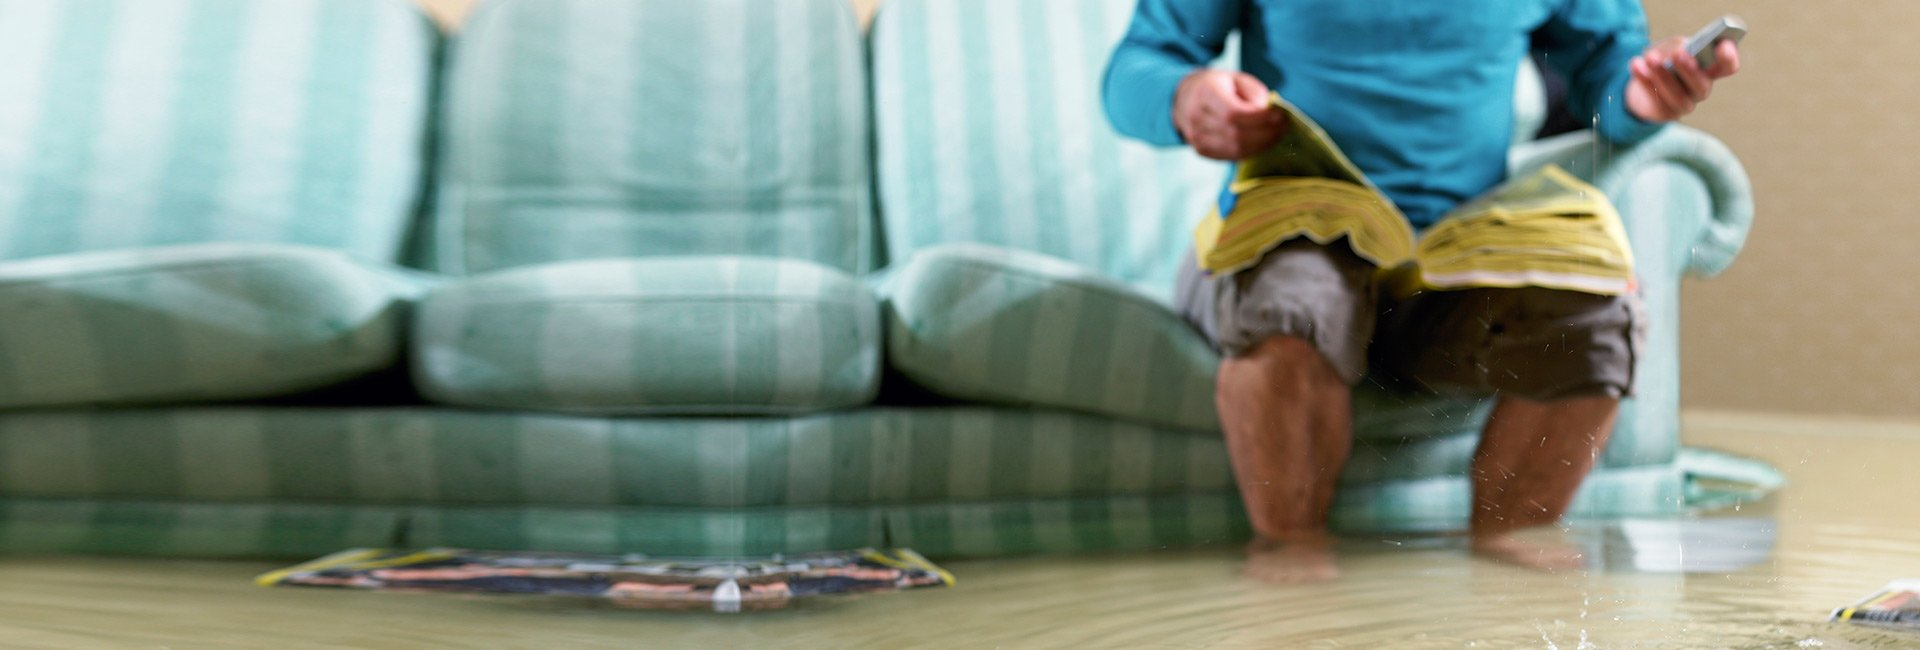 man in flooded living room looking through the yellow pages